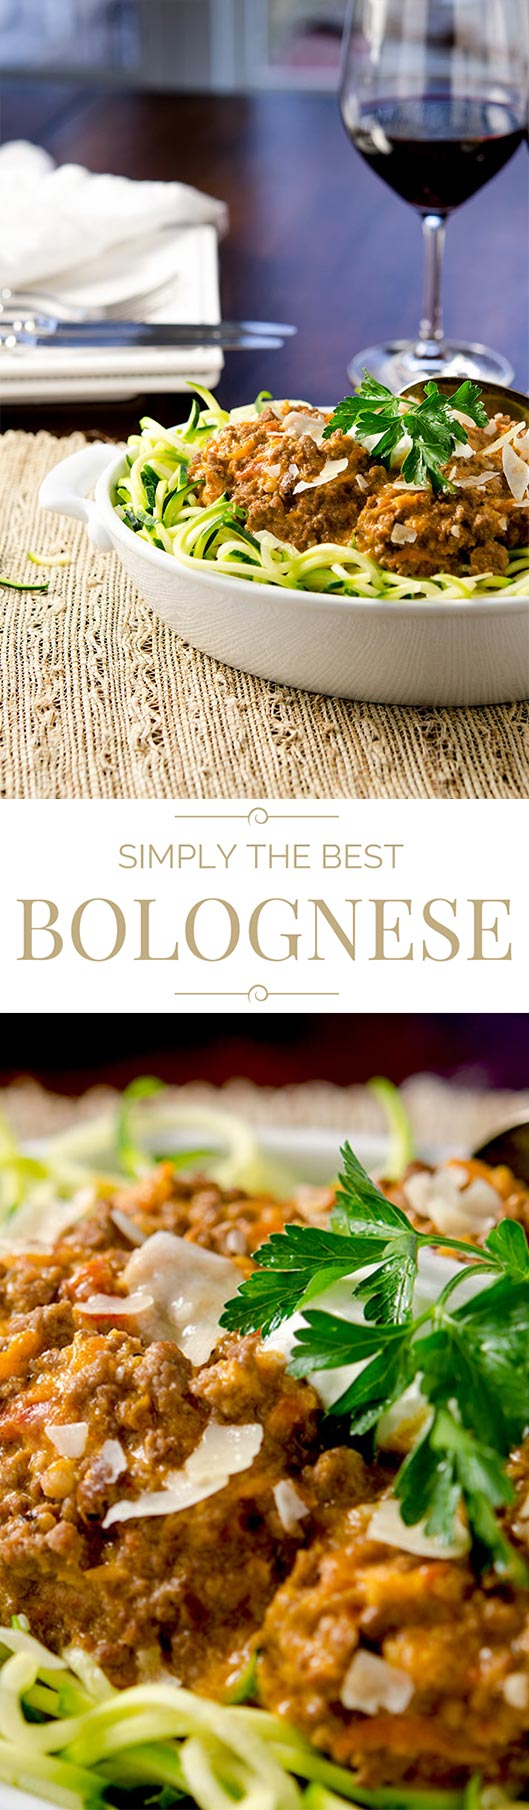 The perfect authentic bolognese sauce that is fit for your recipe box. There's a lot of love in this recipe... it would make your Grandma proud.